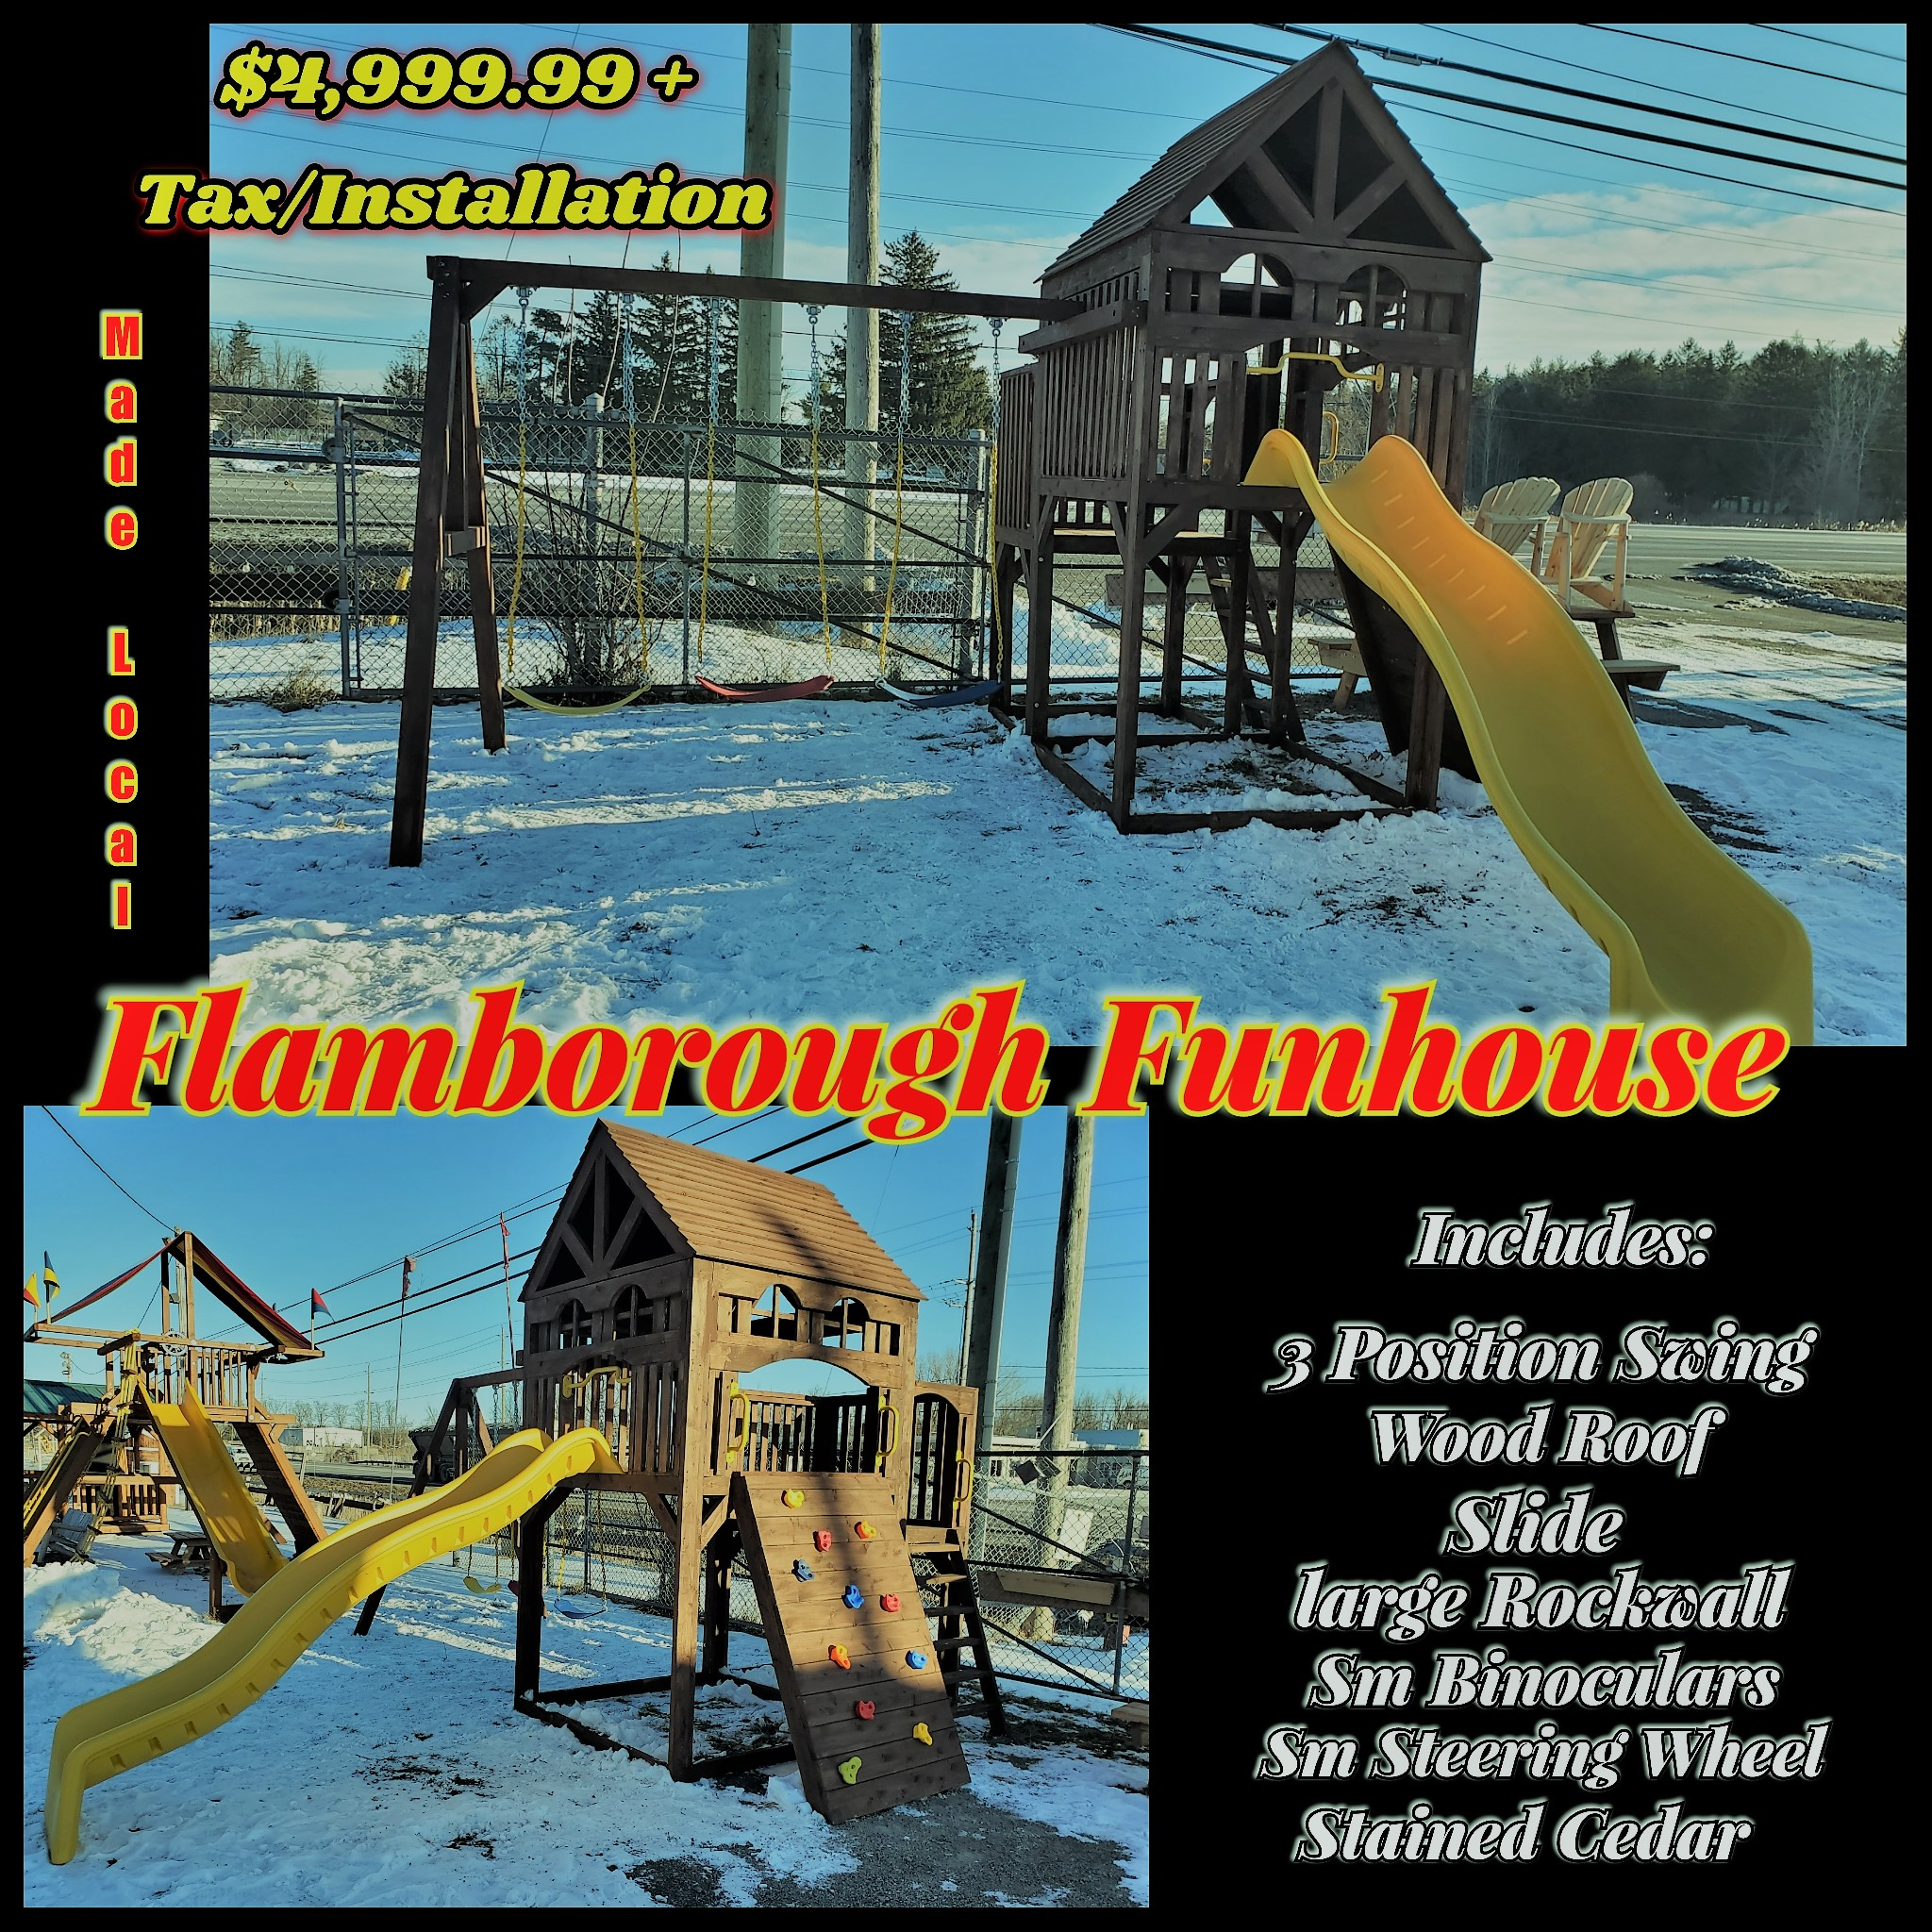 Flamborough Funhouse